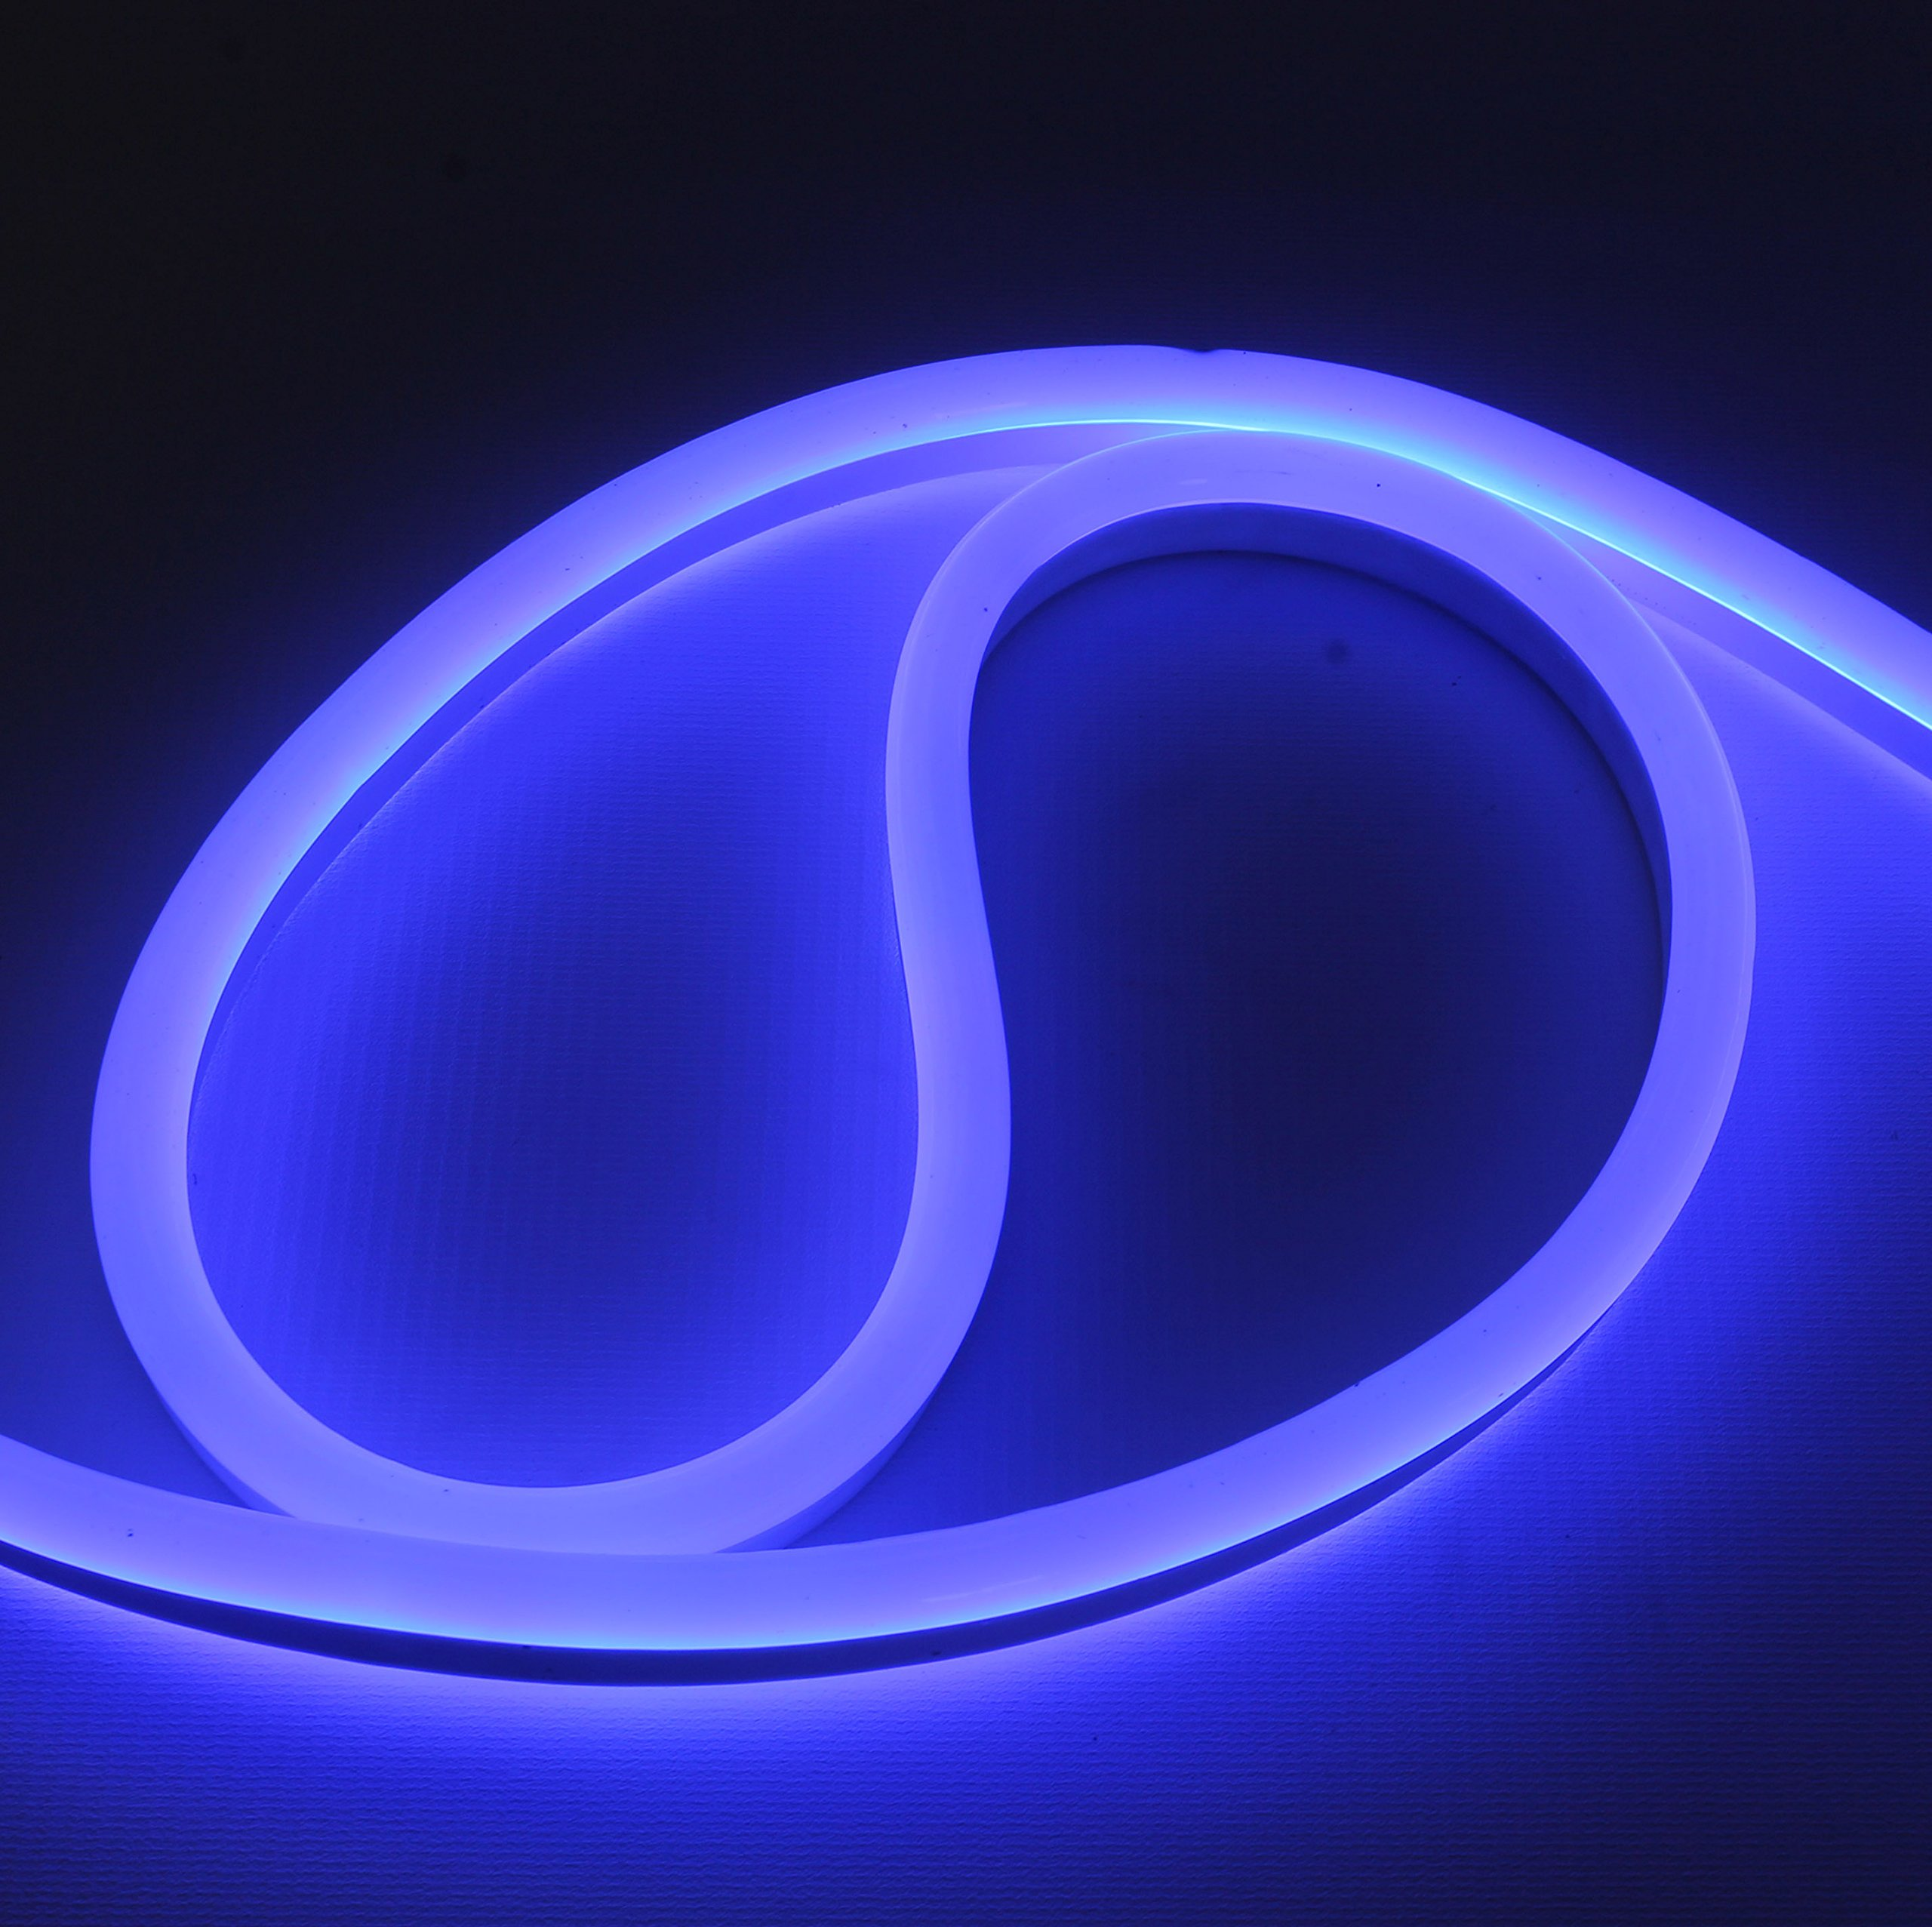 12 Volt LED Flex NEON Light Strip LED Neon Flex Light, 65 Ft, Blue Waterproof Resistant, Accessories Included Ideal For Home Improvement Outdoor Rope Lighting [Ready to use] (Blue)